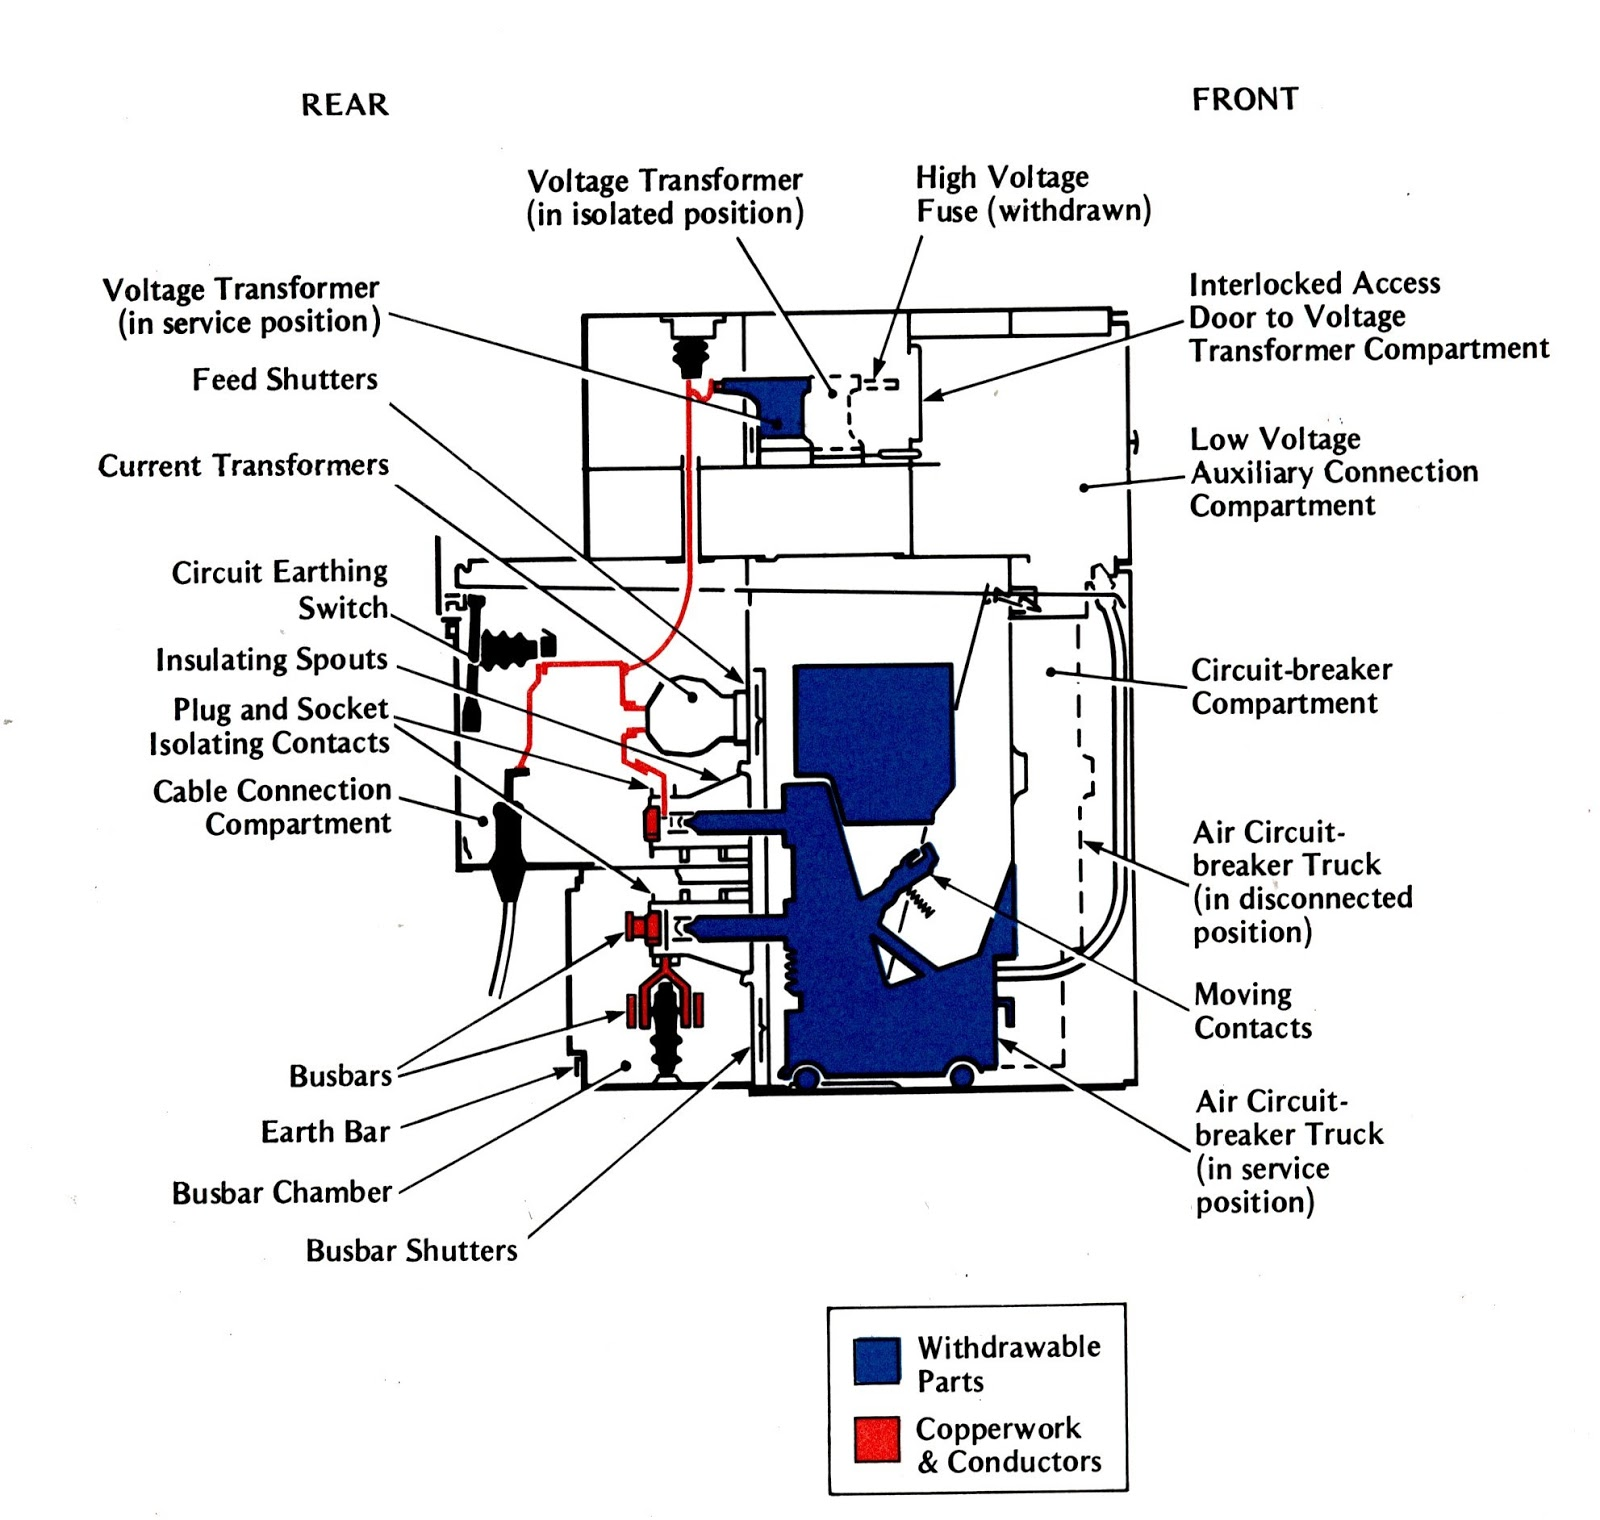 hight resolution of  receptacle wiring diagram on high voltage switchgear wiring diagram on lighting wiring power wiring